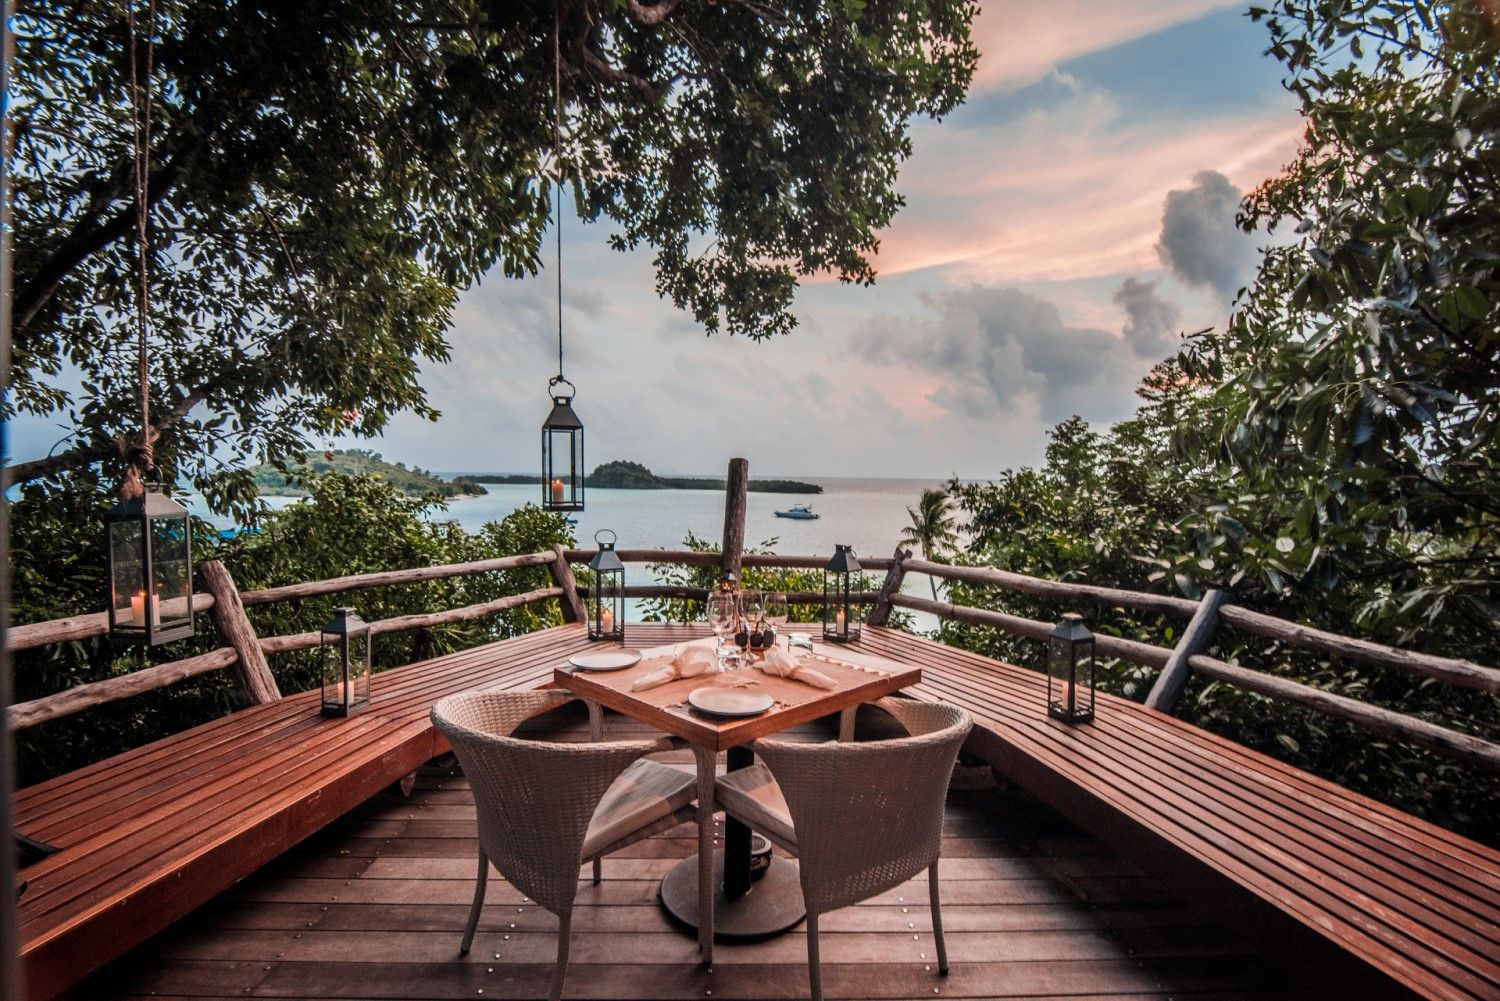 The Lookout Deck at Tree Tops Restaurant, Bawah Reserve